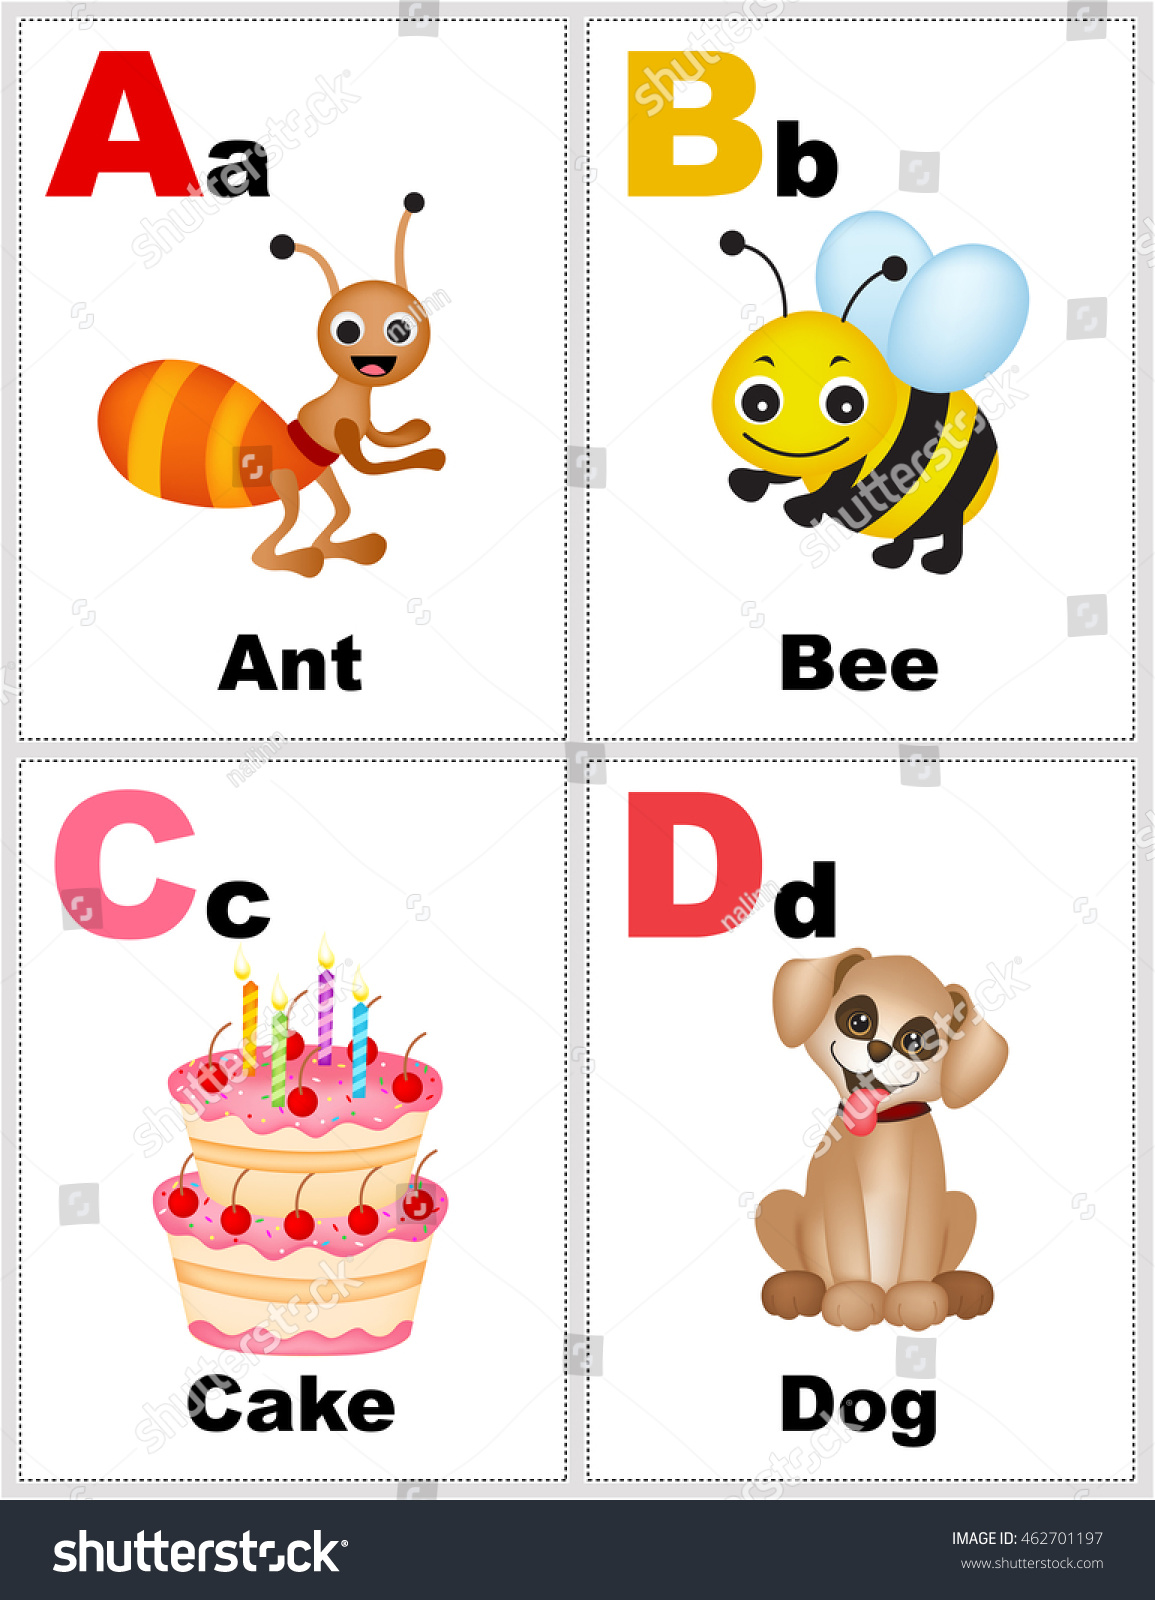 graphic relating to Printable Alphabet Flash Cards identified as Alphabet Printable Flashcards Variety Letter Abcd Inventory